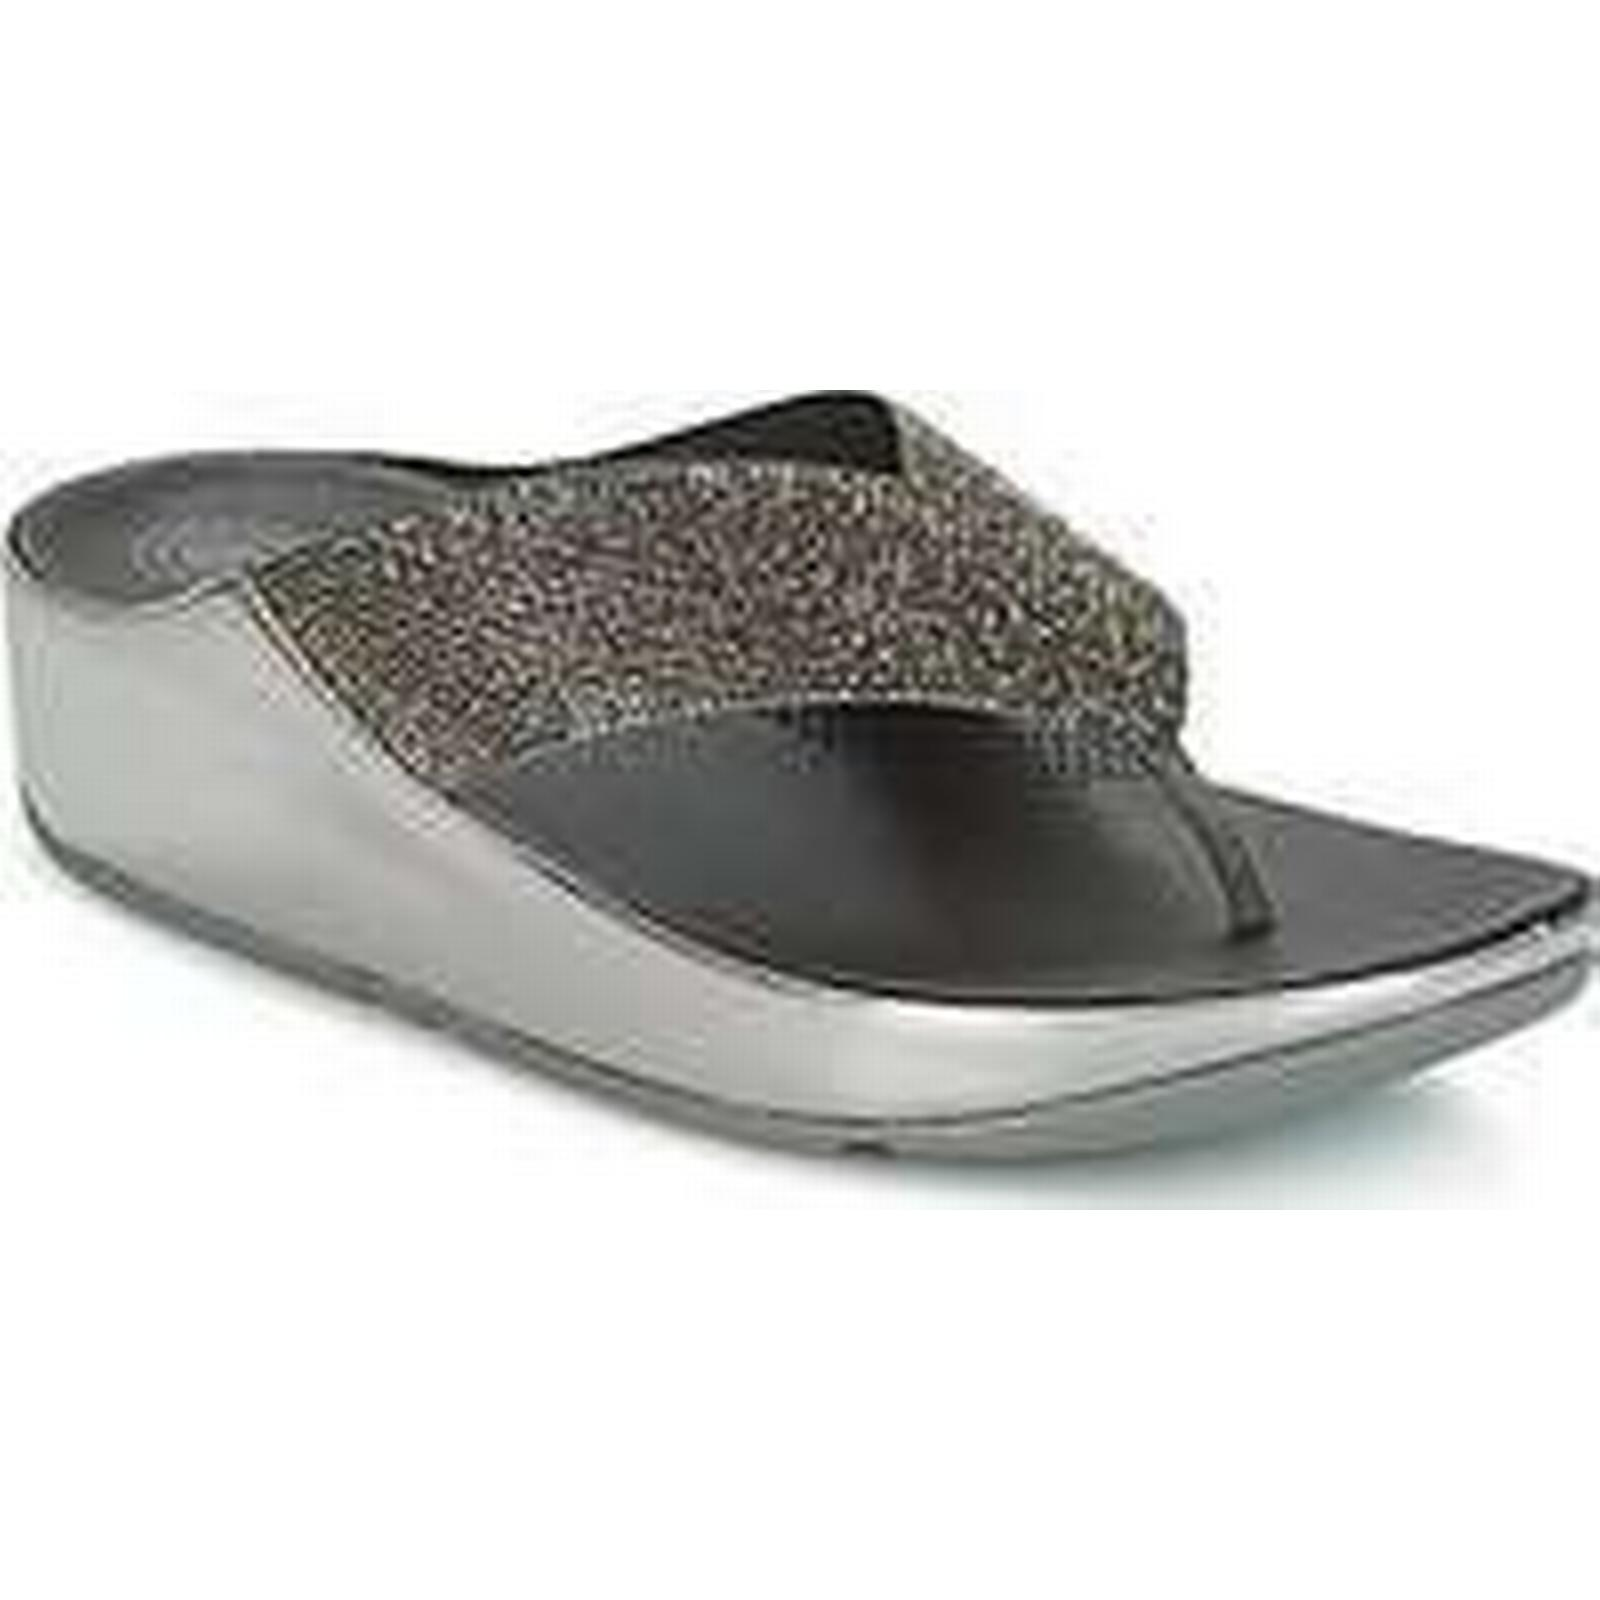 Spartoo.co.uk FitFlop CRYSTALL Shoes women's Mules / Casual Shoes CRYSTALL in Silver 635195